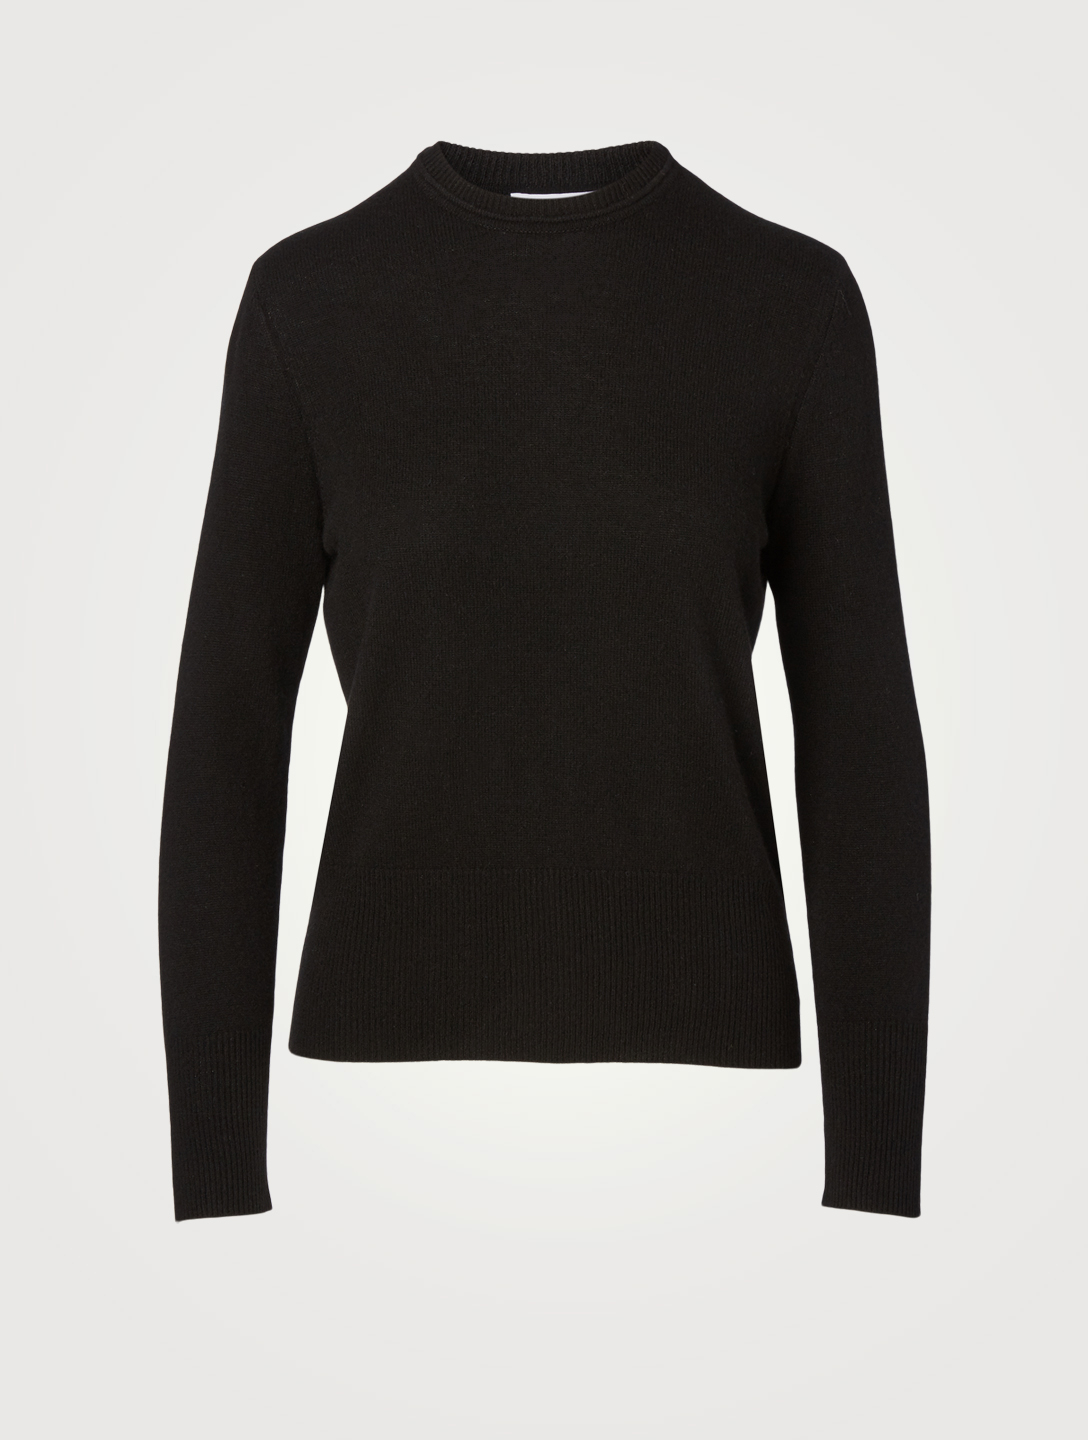 EQUIPMENT Sanni Cashmere Crewneck Sweater Women's Black